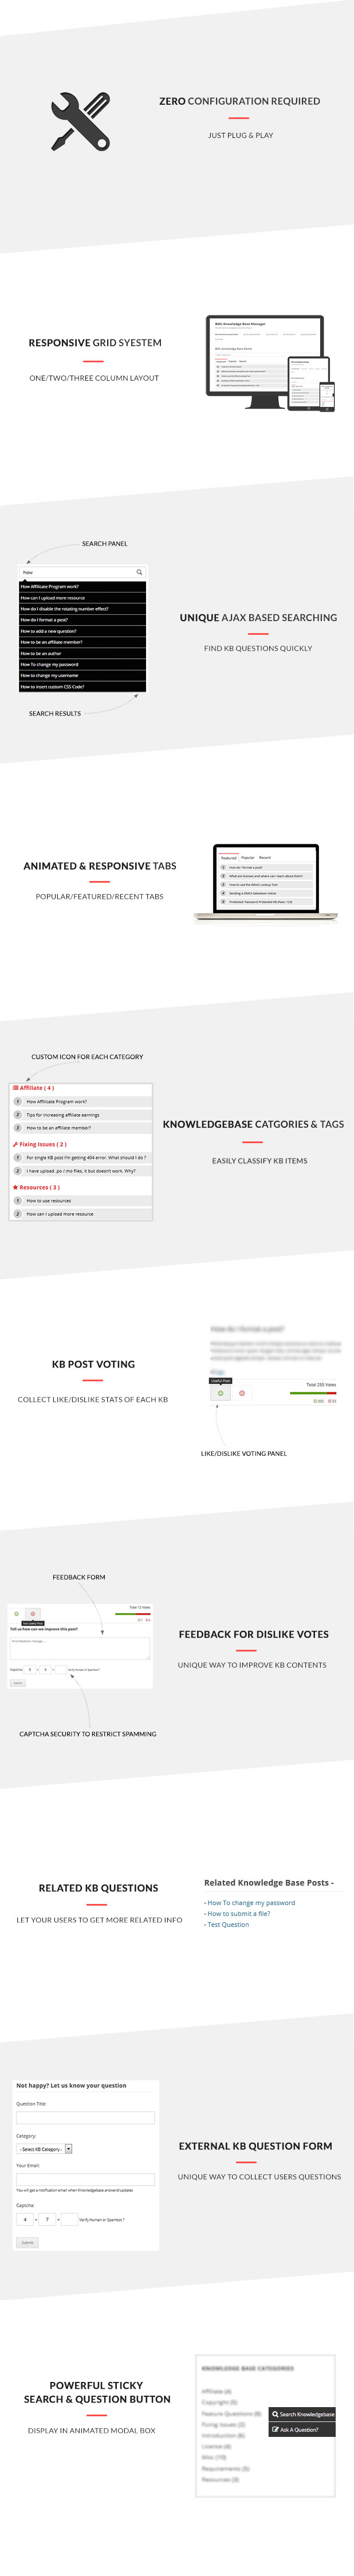 Knowledgedesk - Knowledge Base WordPress Theme - 9